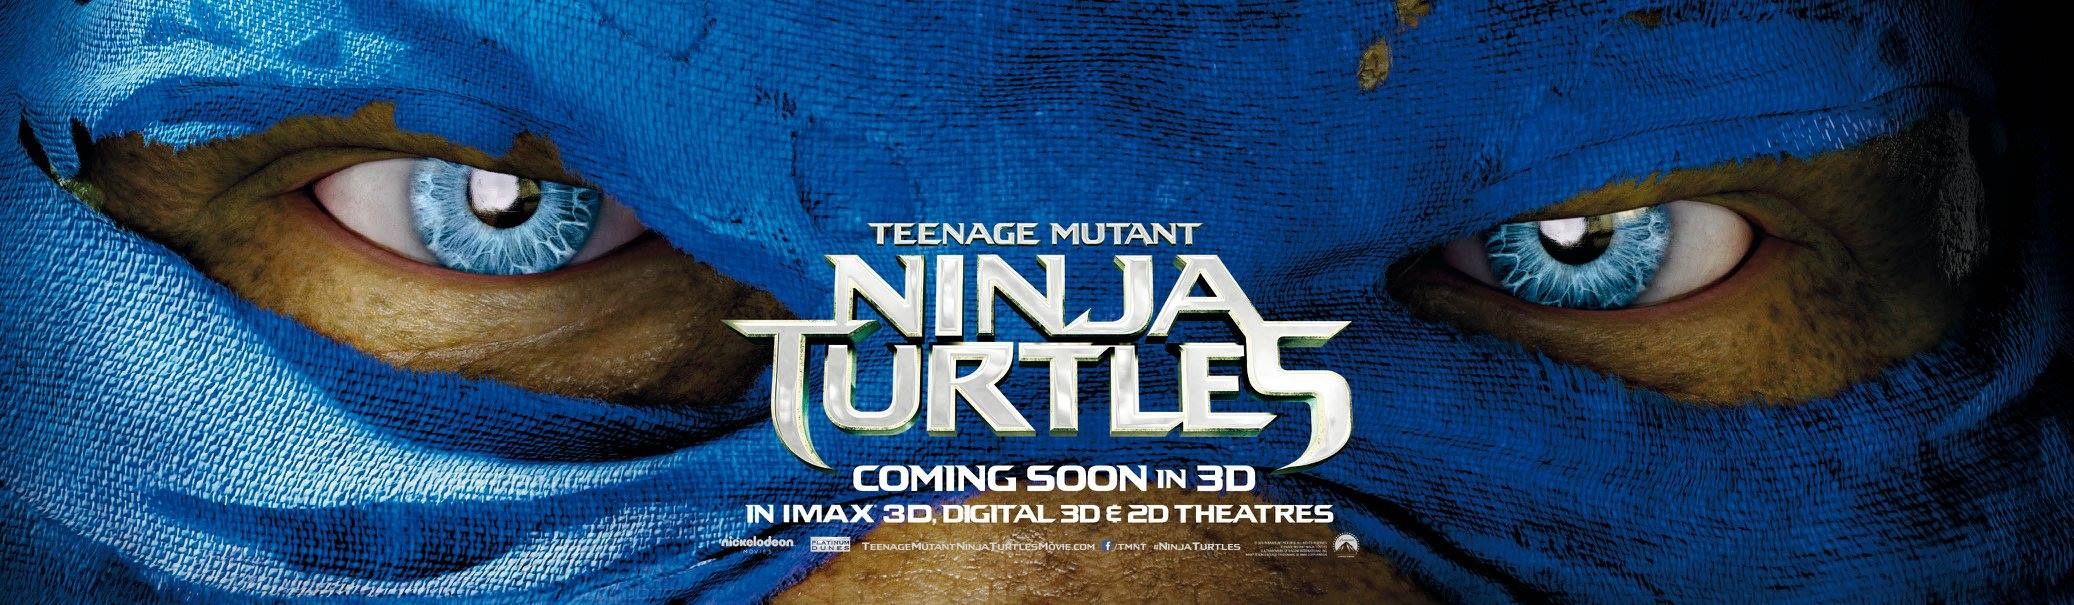 TEENAGE MUTANT NINJA TURTLES-Official Poster Banner PROMO XLG-04AGOSTO2014-01